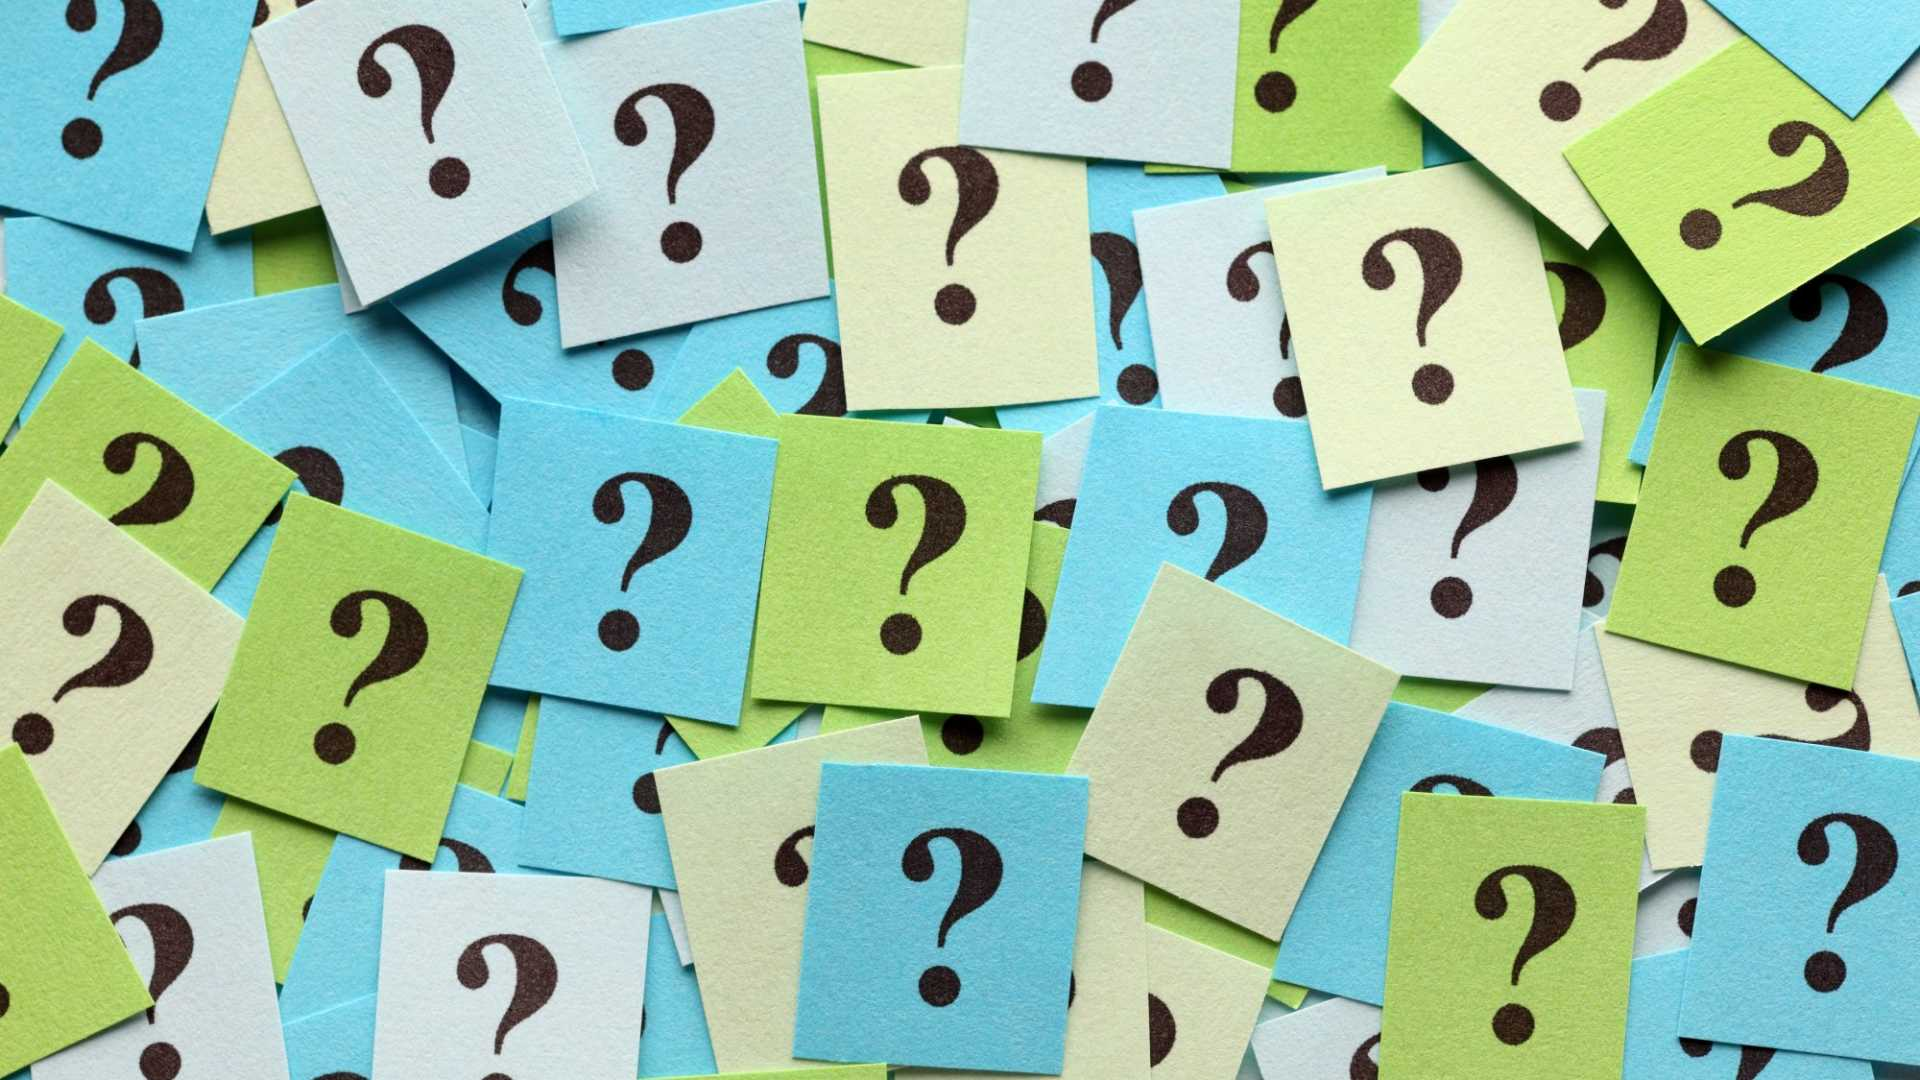 Every New Entrepreneur Should Answer These 4 Questions Before Starting Their Company